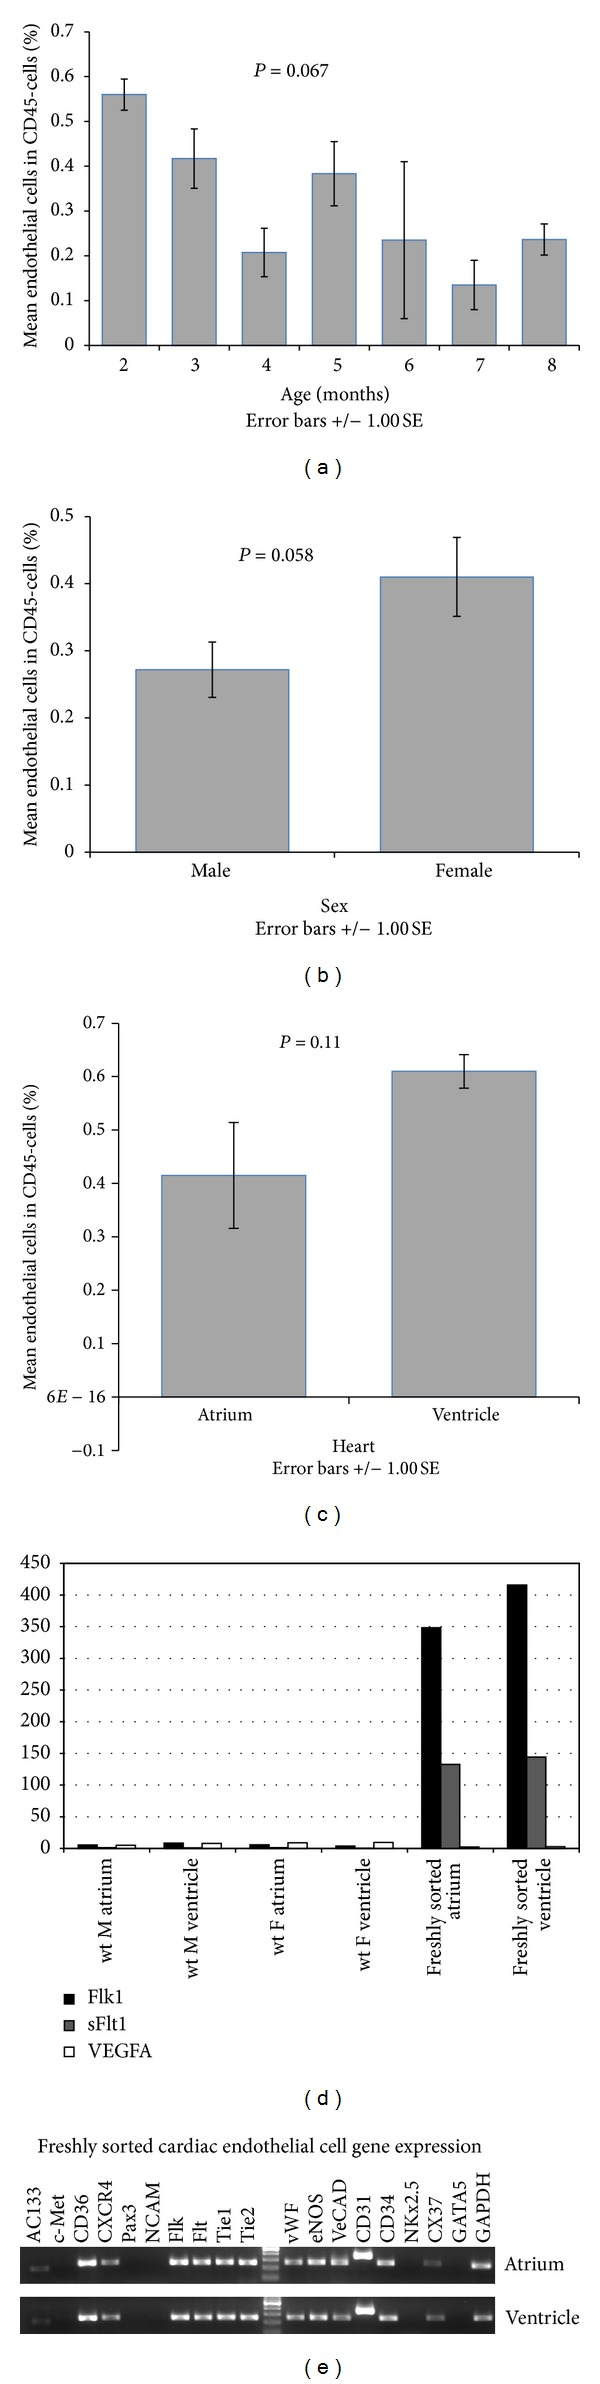 Freshly-sorted cardiac endothelial cells. Comparison of endothelial percentage within CD45− population among age (a) ( n = 28) and gender (b) ( n = 29). (c) The percentage of ECs within CD45− population between atrium and ventricle in 3-month-old mice ( n = 11). (d) q-RT-PCR levels for Flk-1 , soluble Flt-1, and VEGF-A of one male (M), one female (F), and freshly FACS-sorted ECs from atrium and ventricle normalized to GAPDH. (e) Representative RT-PCR analysis of freshly FACS-sorted ECs from atrium and ventricle (three females 15–24-month-old) showed expression of endothelial markers Flk-1, Flt-1, Tie-1, Tie-2, vWF, eNOS, VE-Cad, CD31, and CD34 while lacked cardiomyocyte marker NKx2.5 and endocardium marker GATA5. P values were calculated by ANOVA (a) or Student's t -test (b, c).